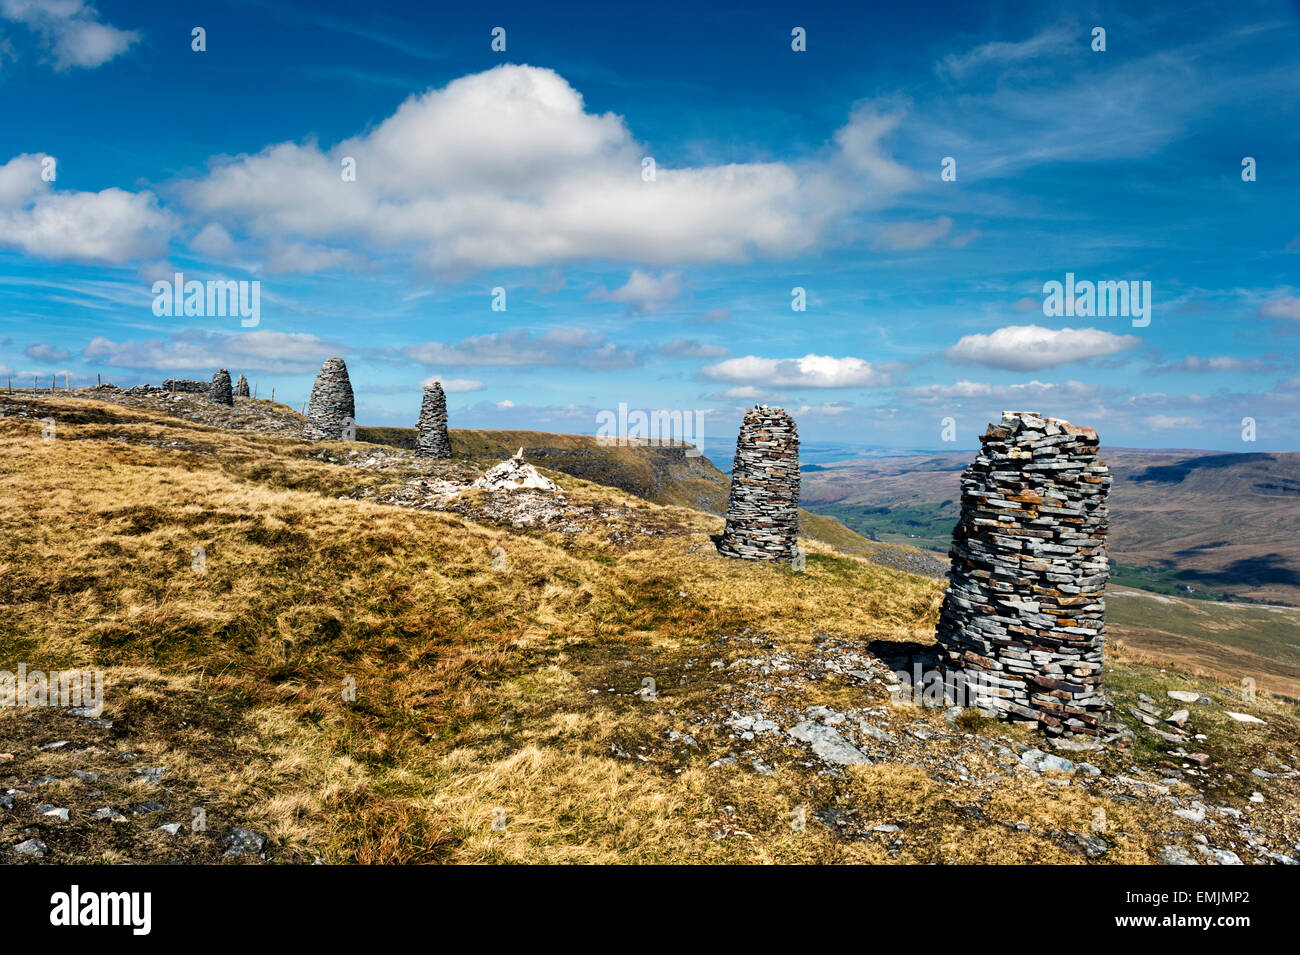 Wild Boar Fell, near Kirkby Stephen, Eden Valley, Cumbria, UK, with stone cairns. A popular destination for walkers. - Stock Image